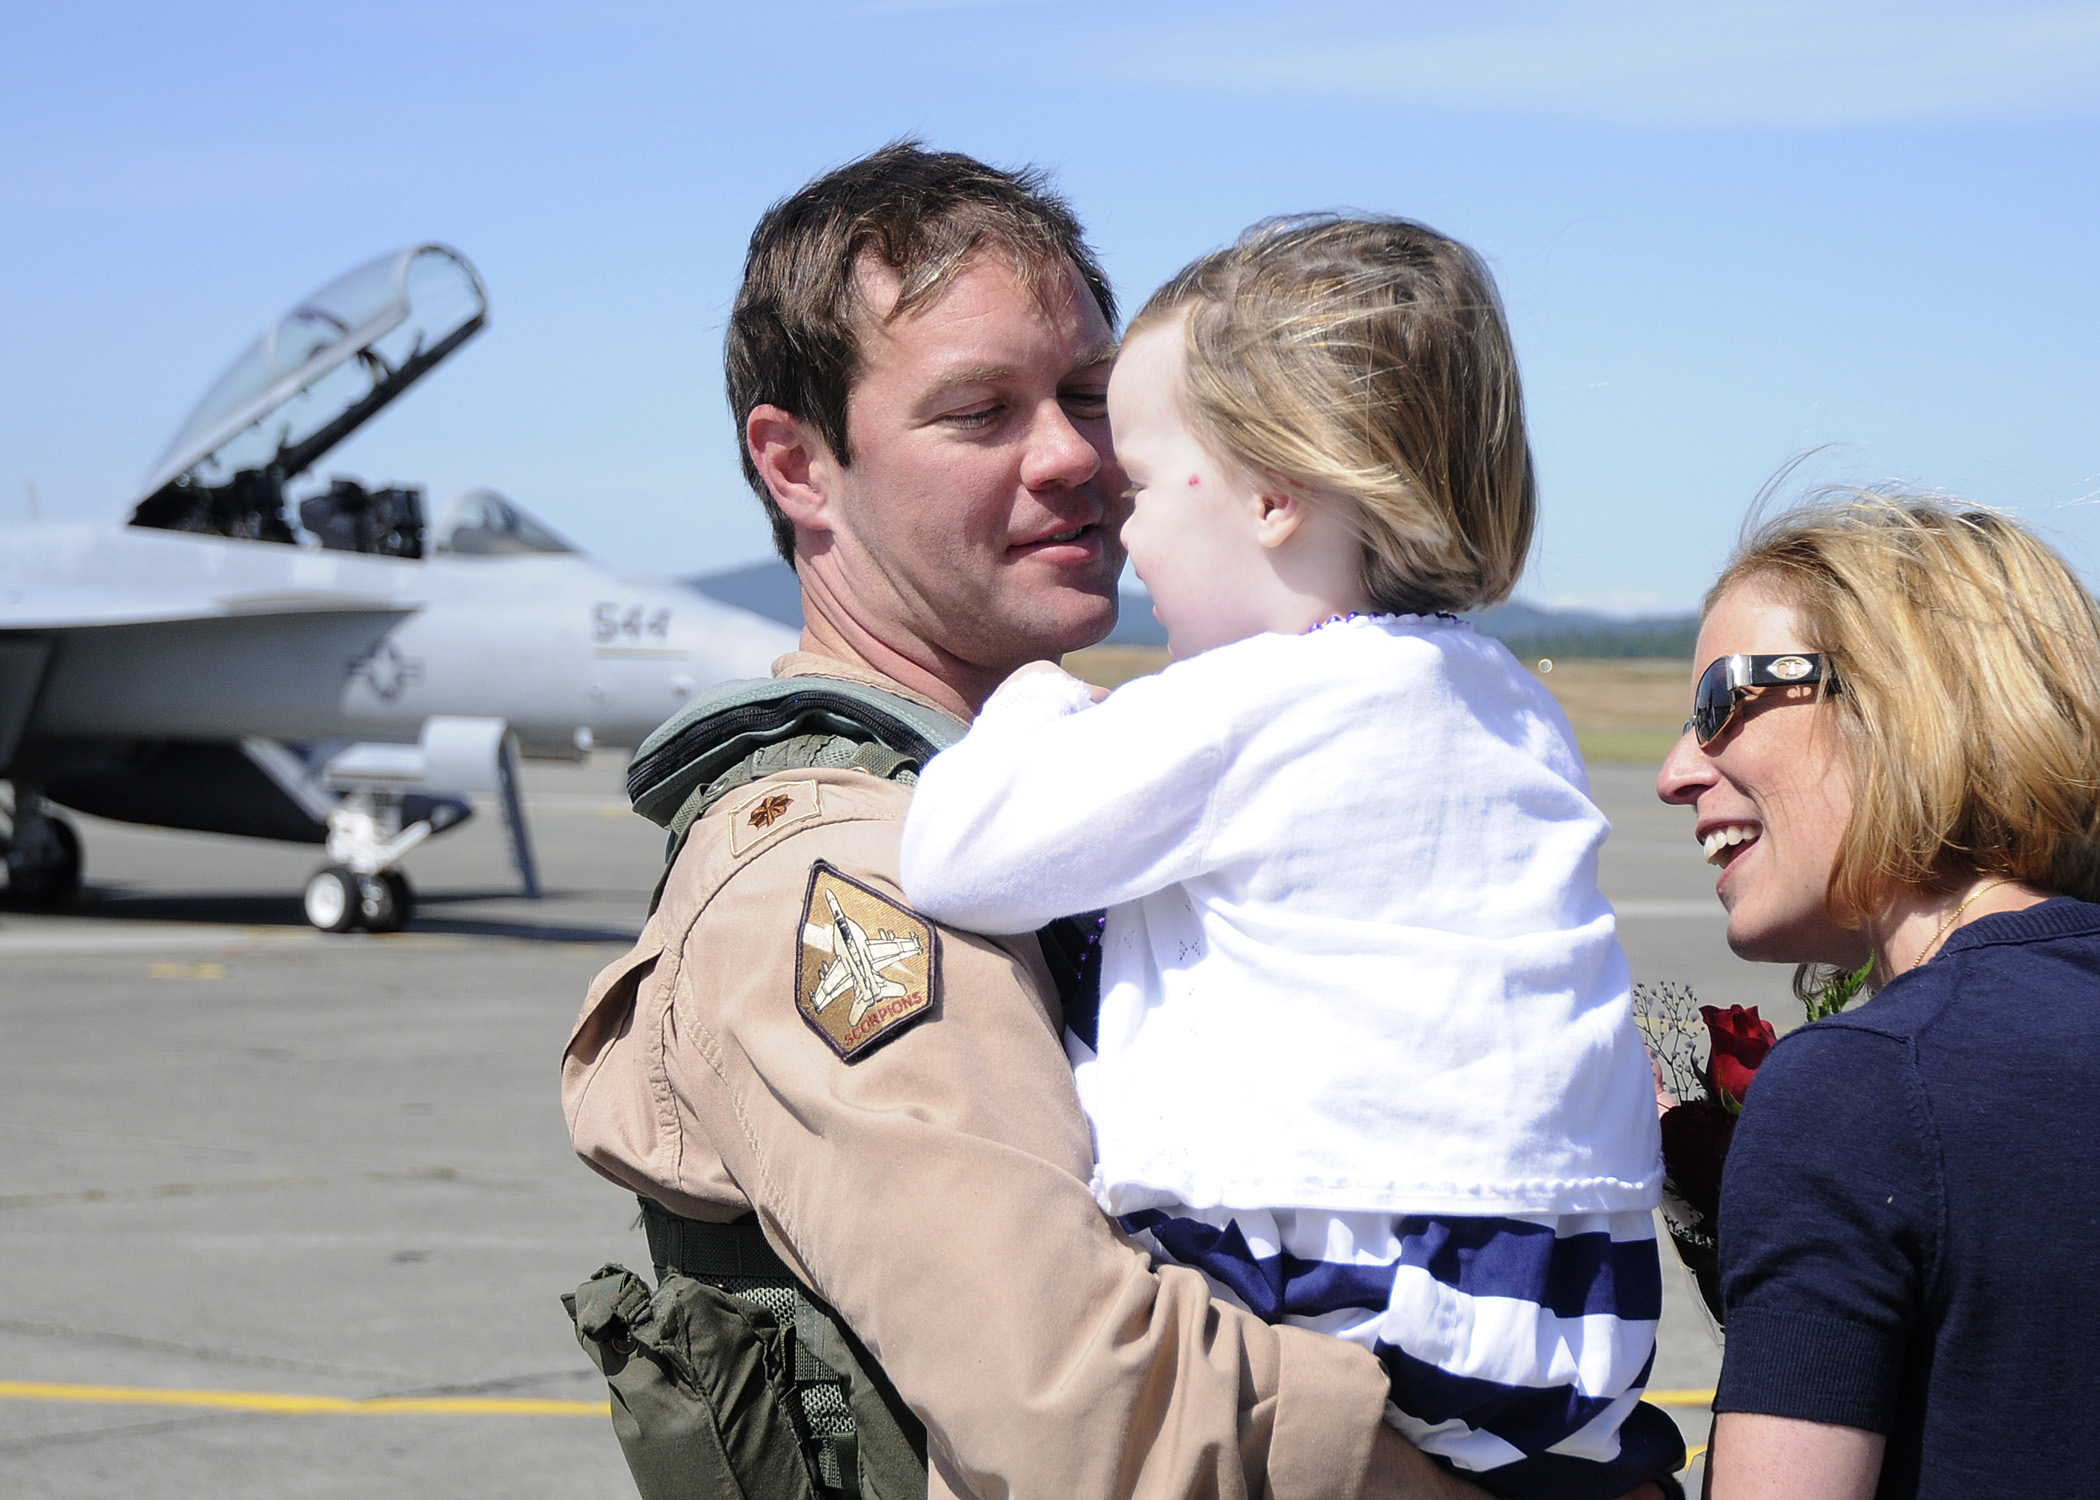 US Navy 110709-N-ZK021-011 Lt. Cmdr. Robert Scott is greeted by family during a homecoming ceremony at Naval Air Station Whidbey